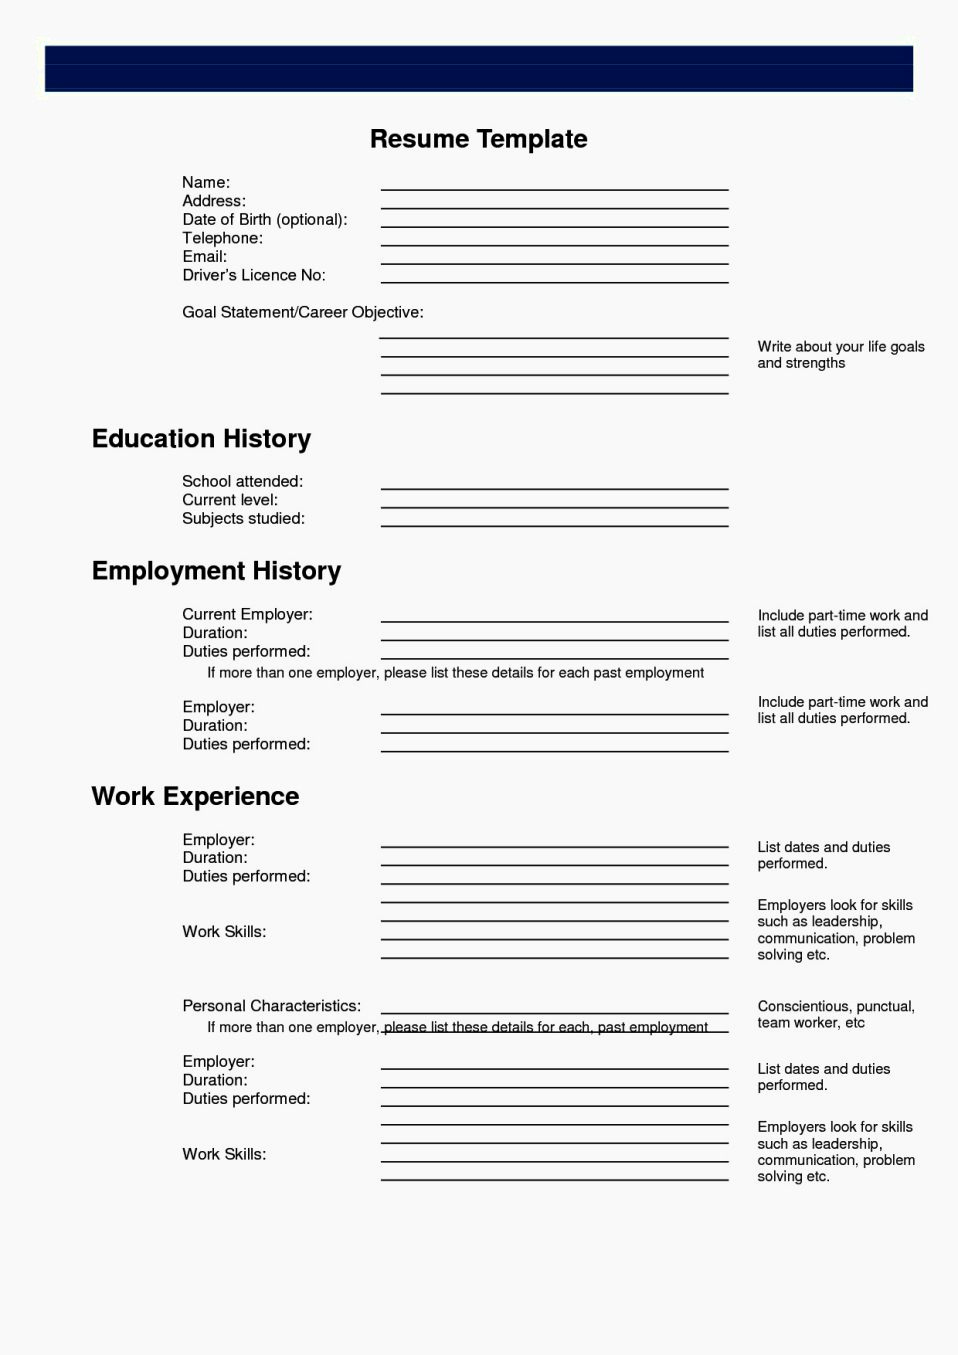 Free Printable Resume Templates Unique Easy Fill In Resume Resume Template